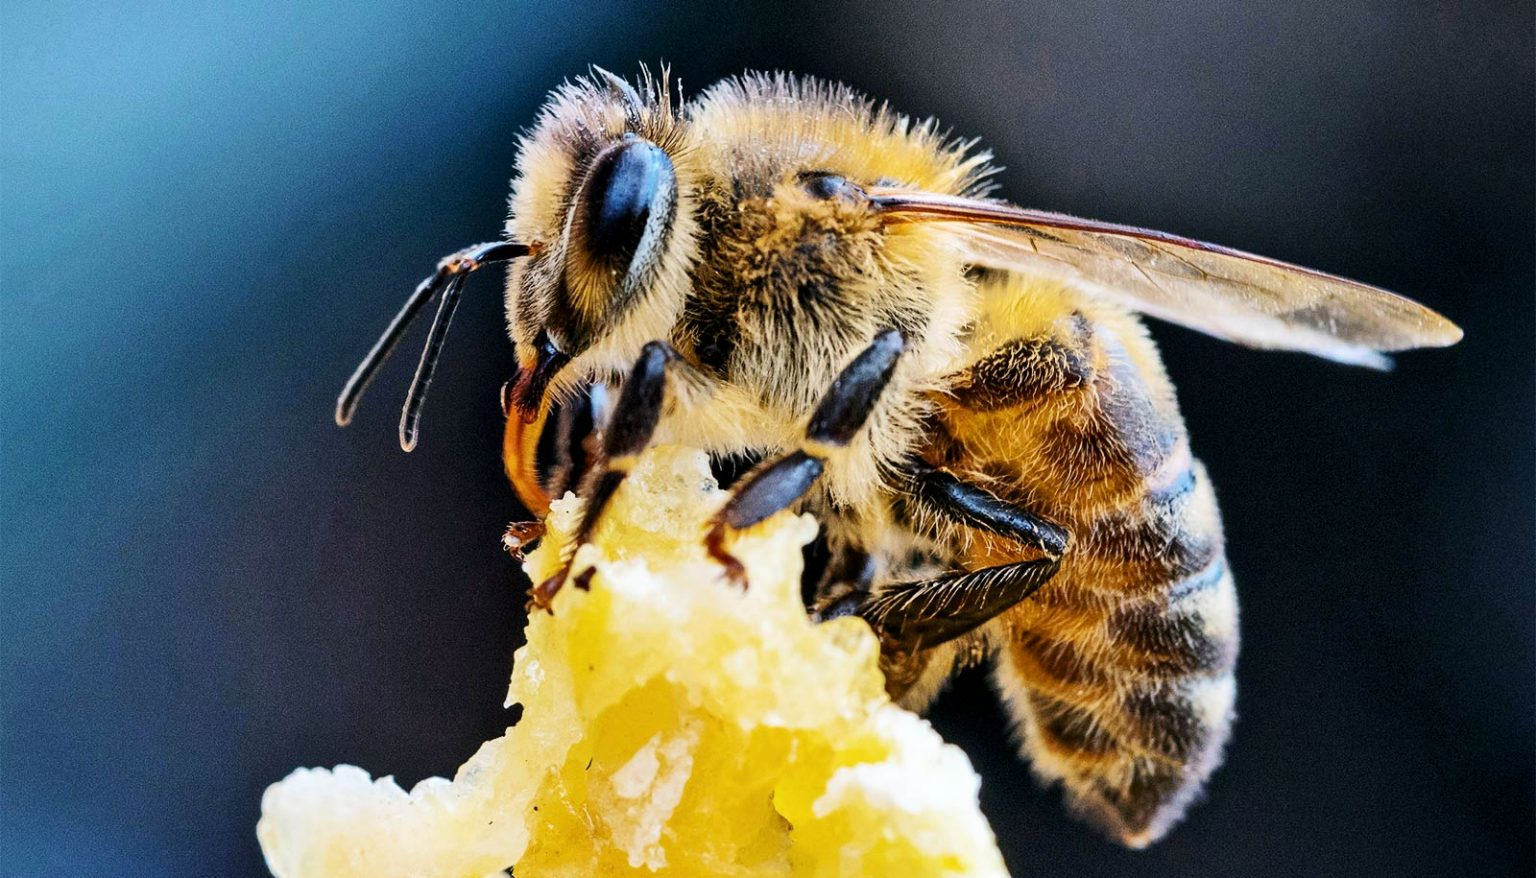 Now bees detect the Corona virus in a few seconds .. What is the story?